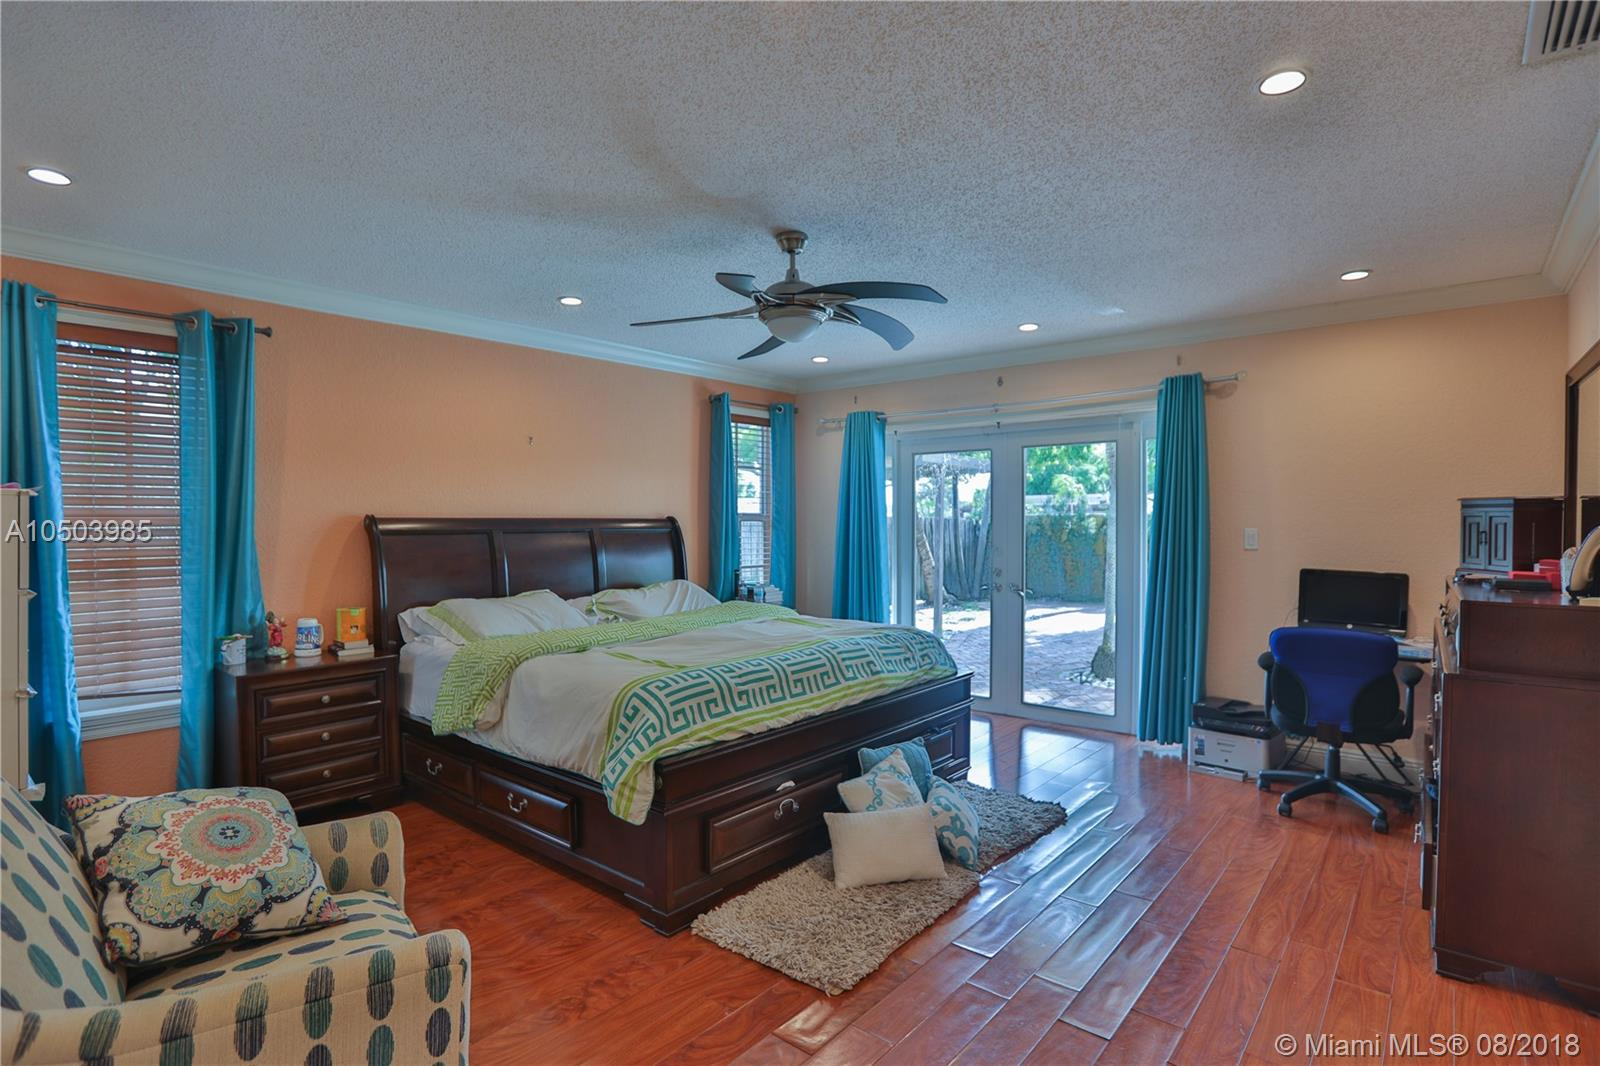 7701 Sw 147th Ct, Miami FL, 33193